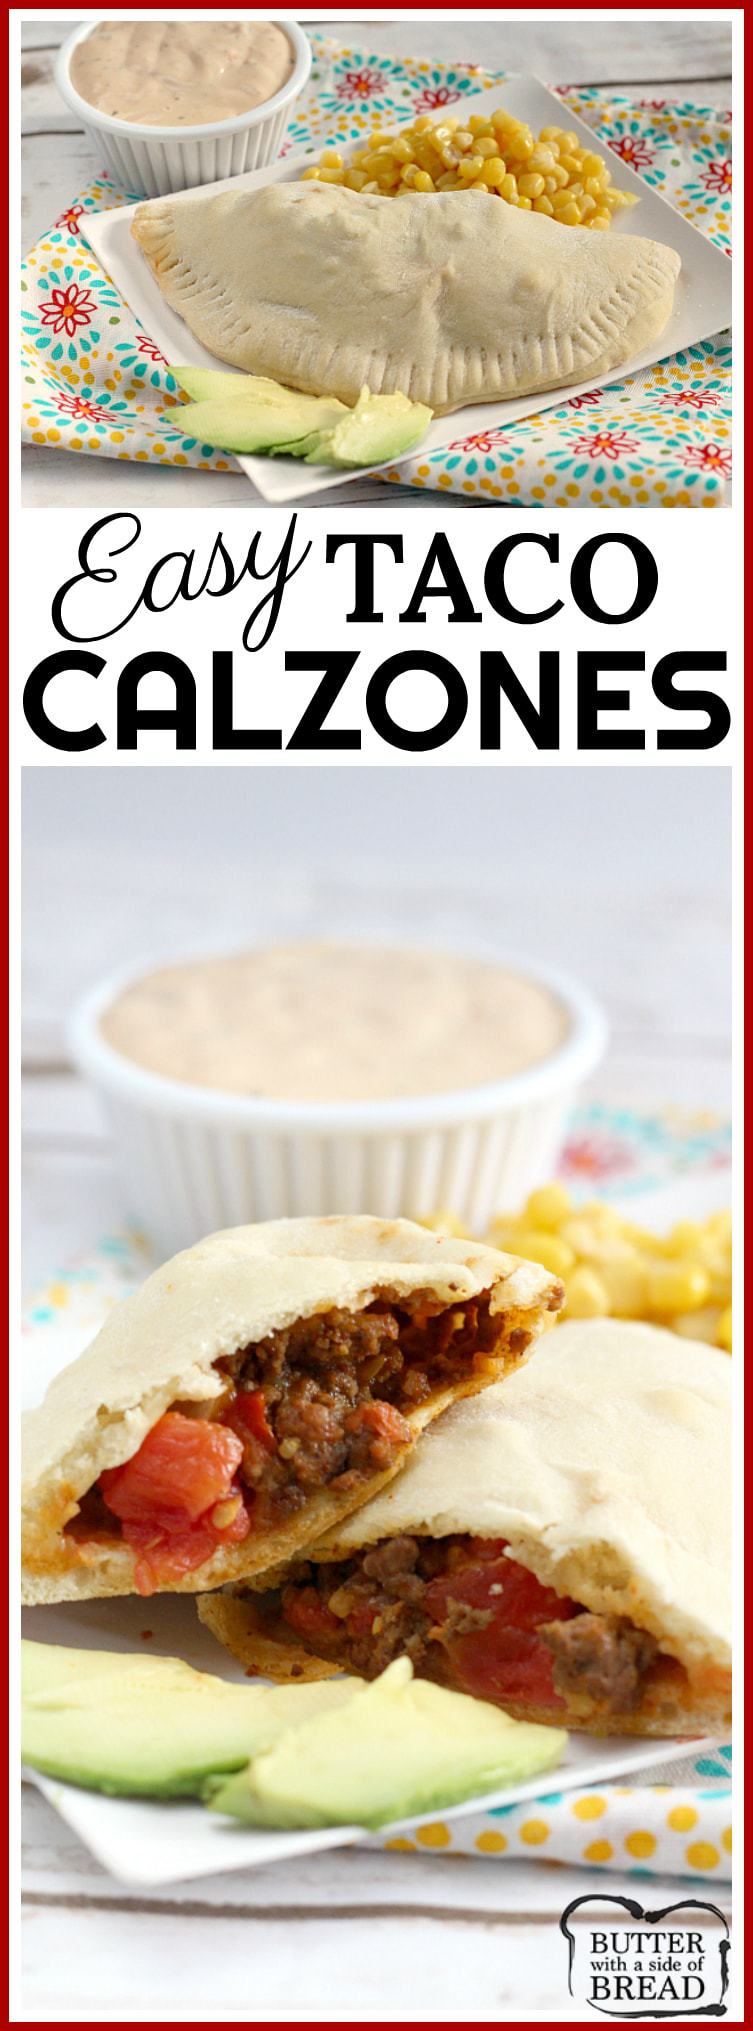 Feb 12,  · To make each calzone measure out a tennis ball sized portion of dough. Roll out into a flat circle and then begin to layer in the beans, beef, salsa, cheese, green onion, olives and chilis on one half of the circle making sure to leave an inch from the edge.